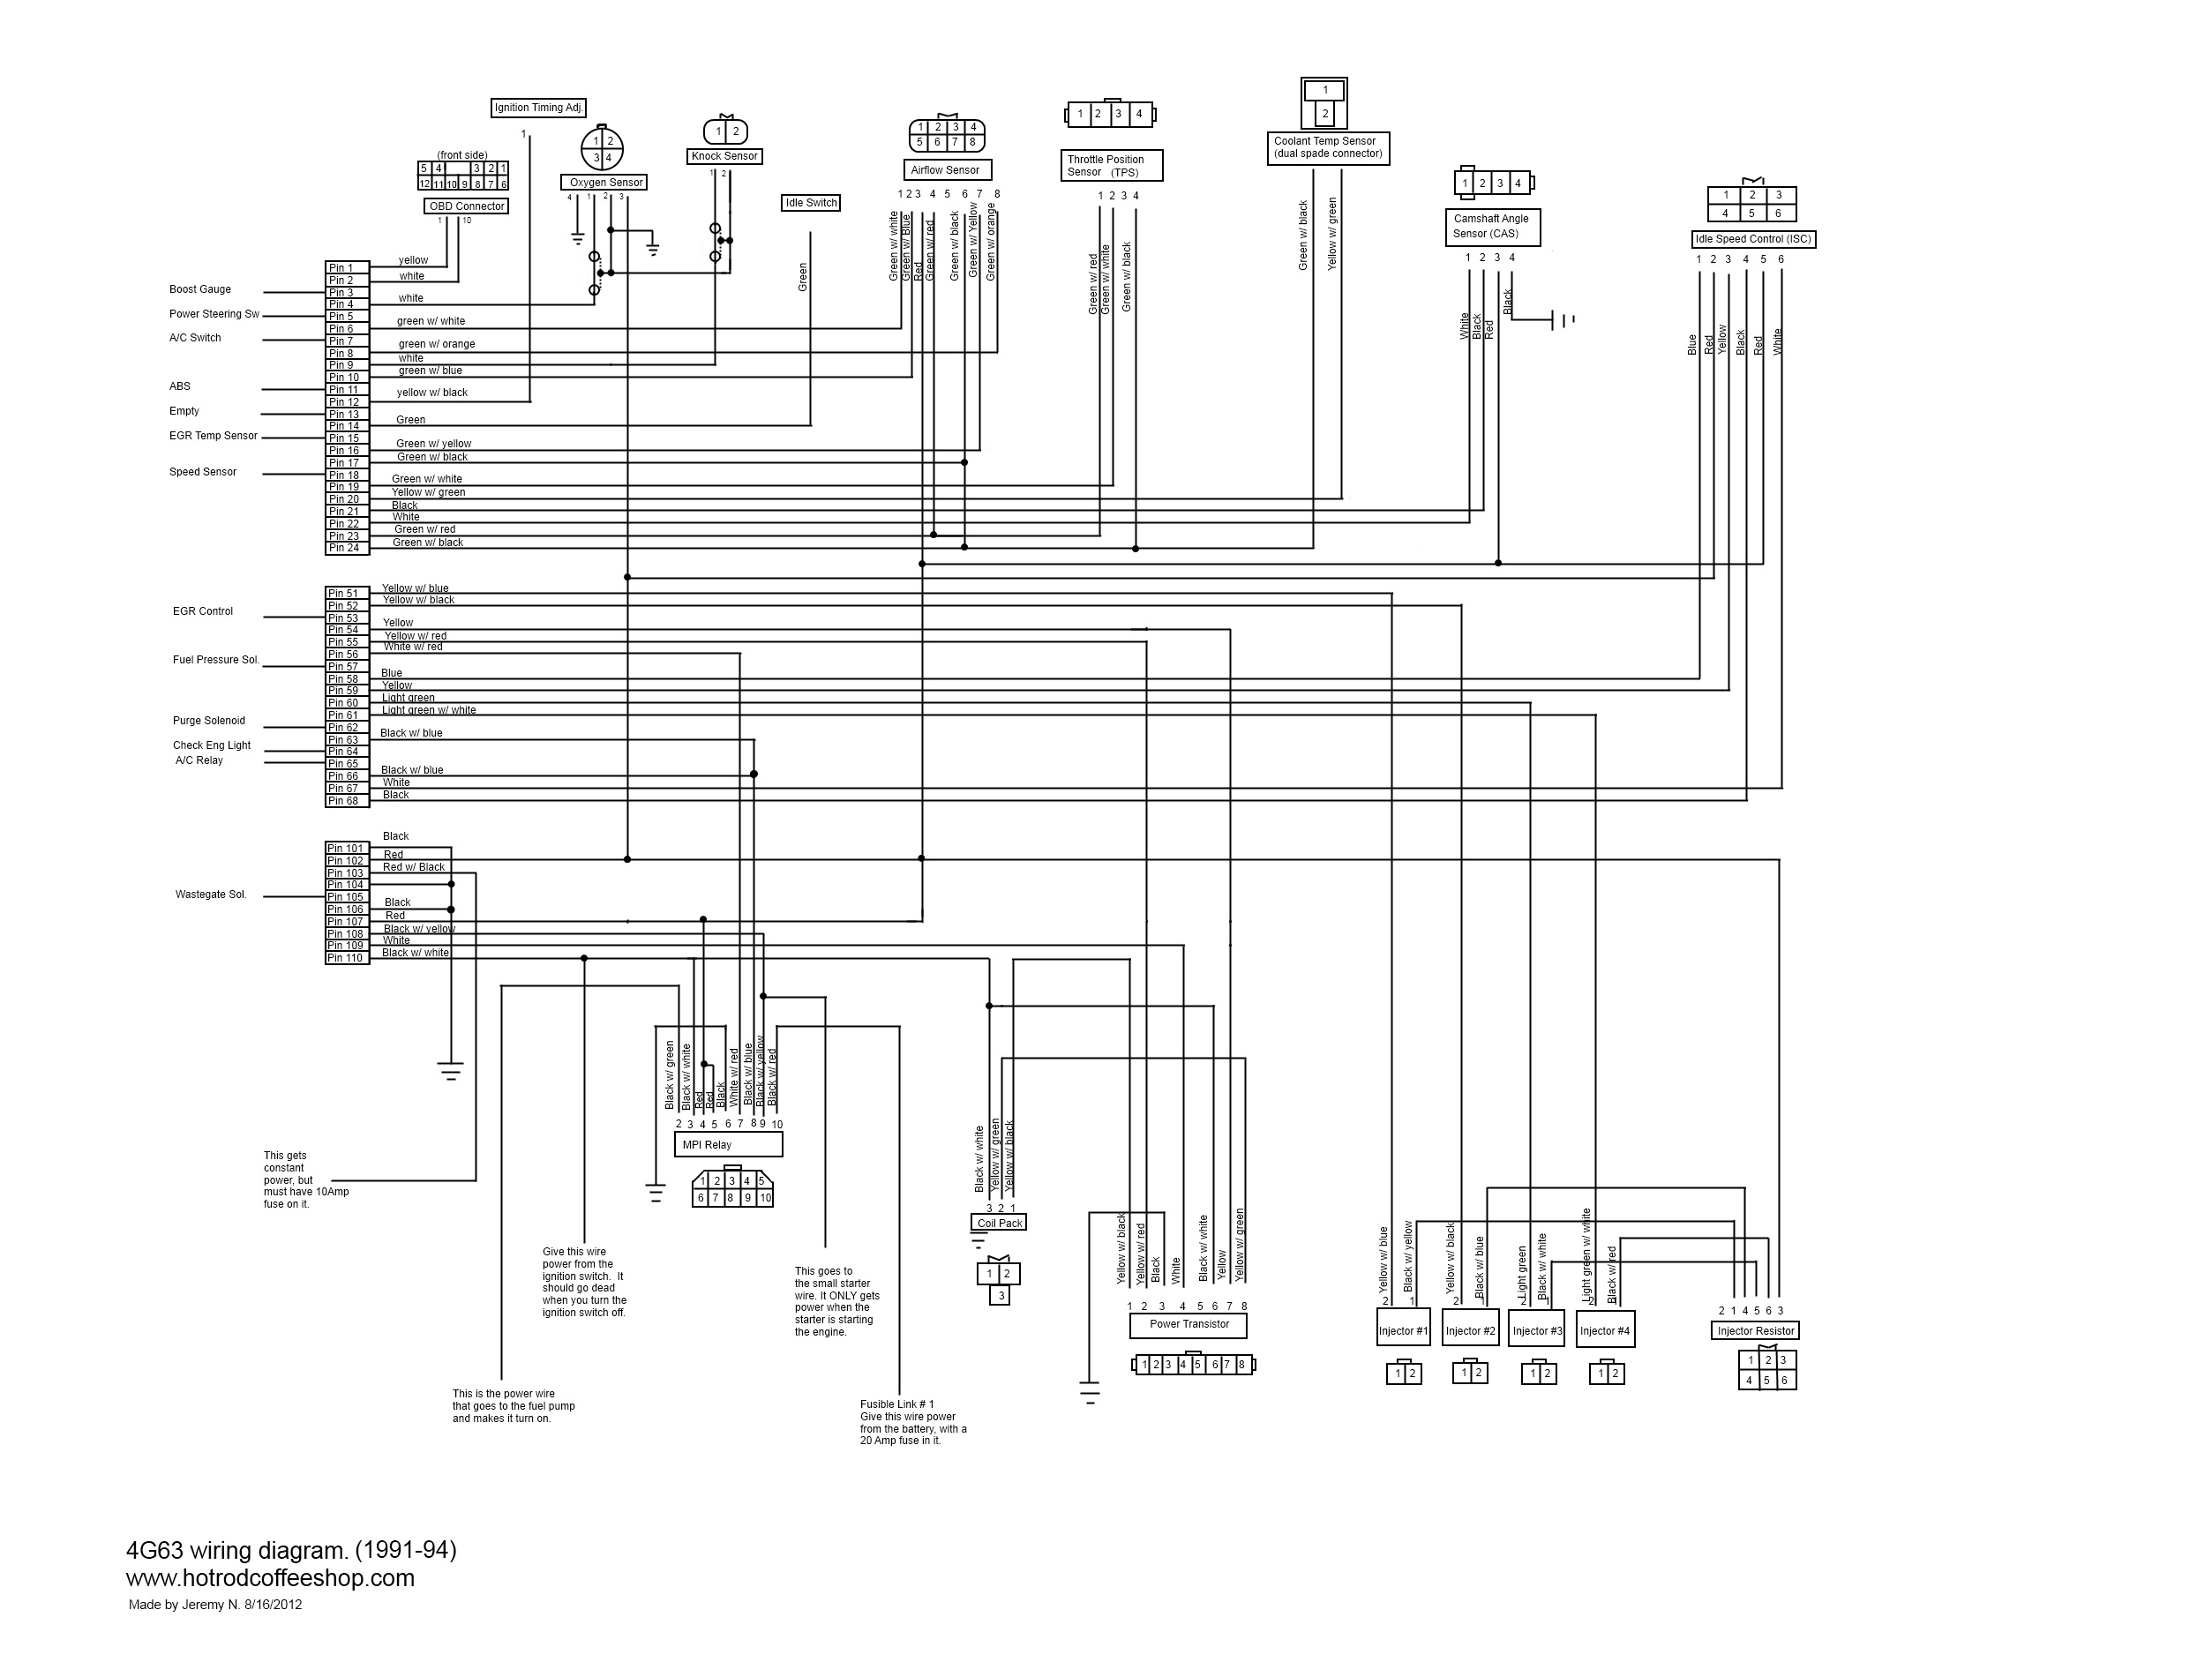 4g63ecudiagram_1 evo 3 wiring diagram led flasher wiring diagram \u2022 wiring diagrams Ignition Switch Wiring Diagram at n-0.co